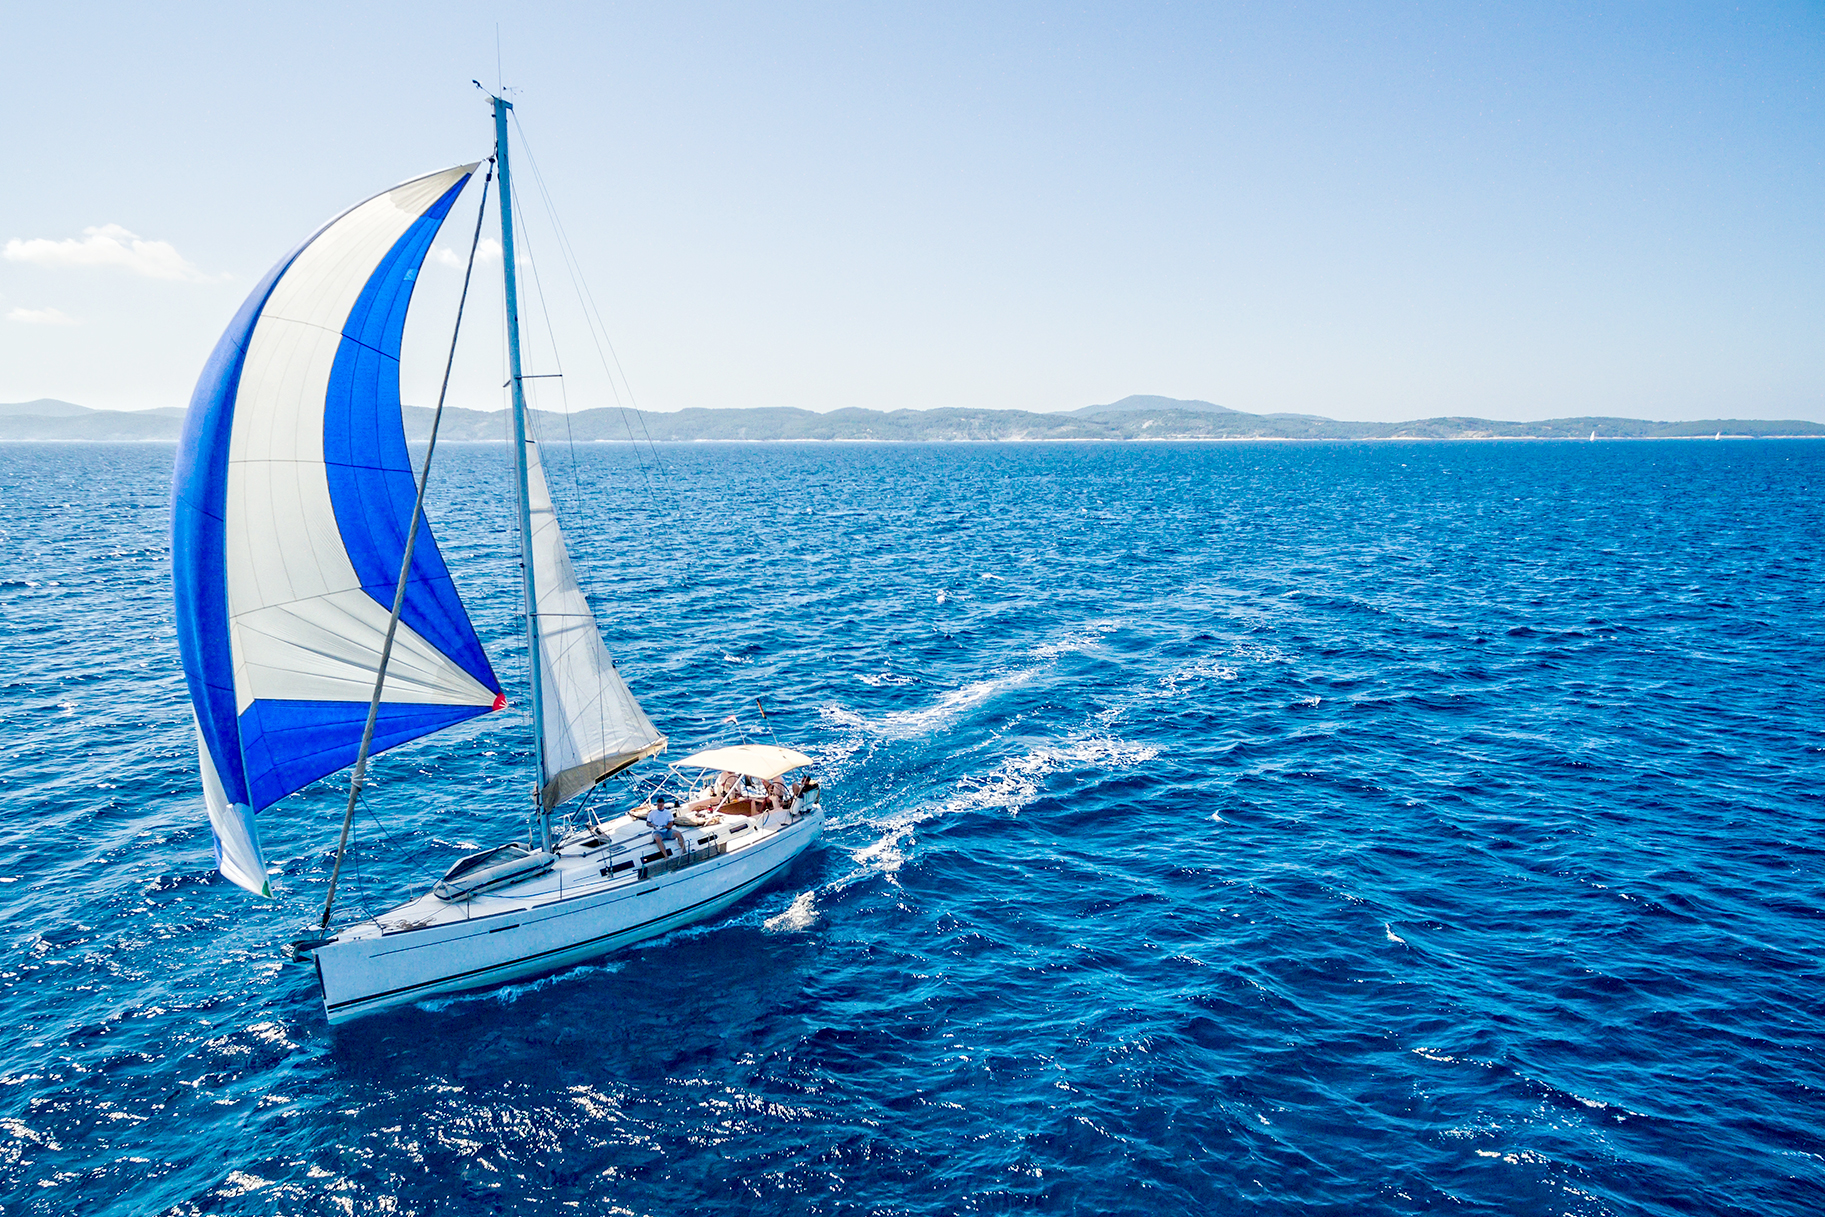 Florida Couple Sinks Sailboat After Two Travel Days | JetSet